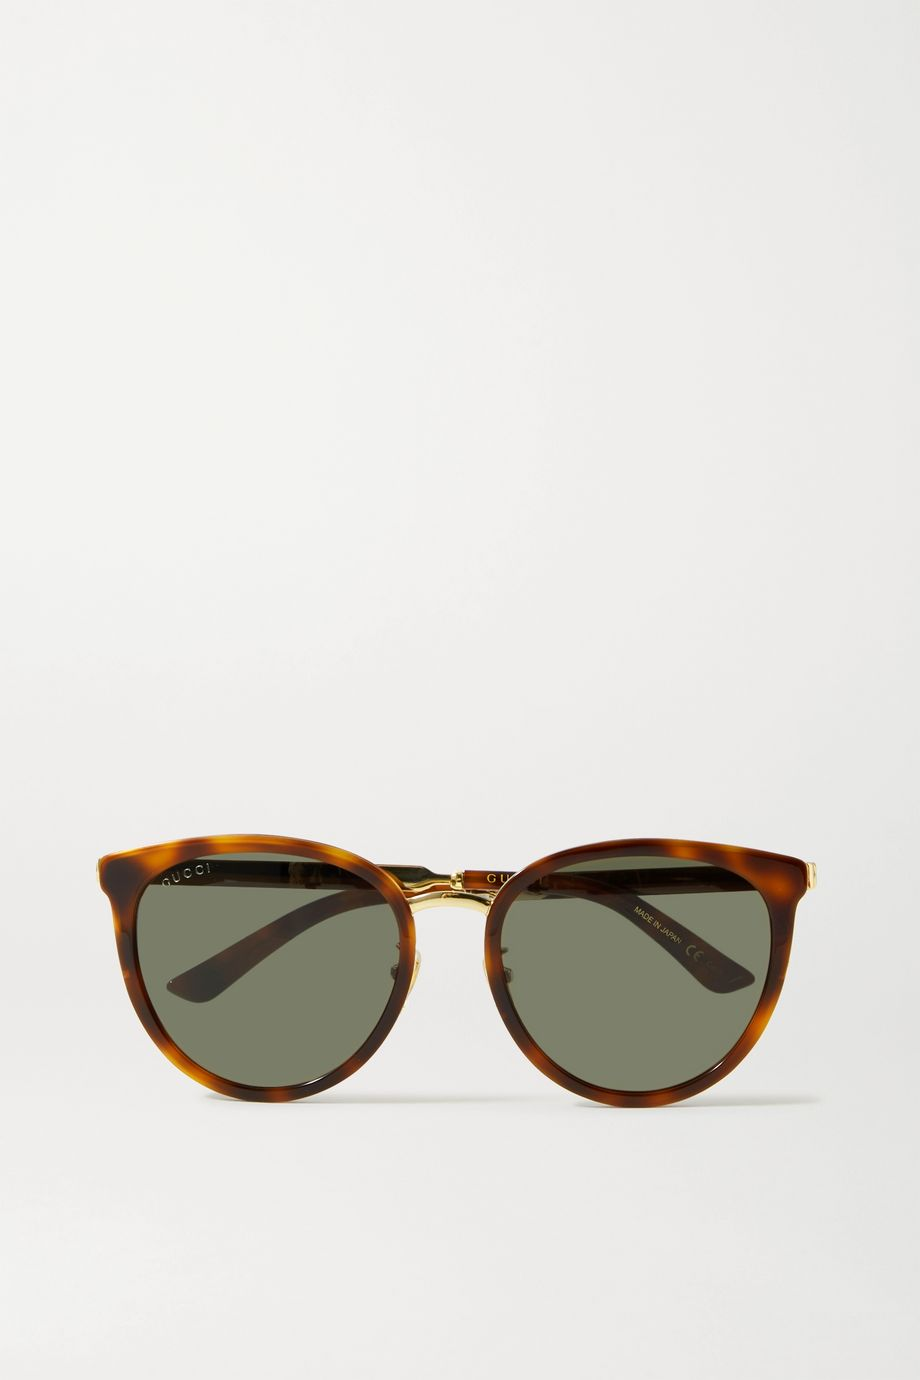 Gucci Cat-eye tortoiseshell acetate and gold-tone sunglasses